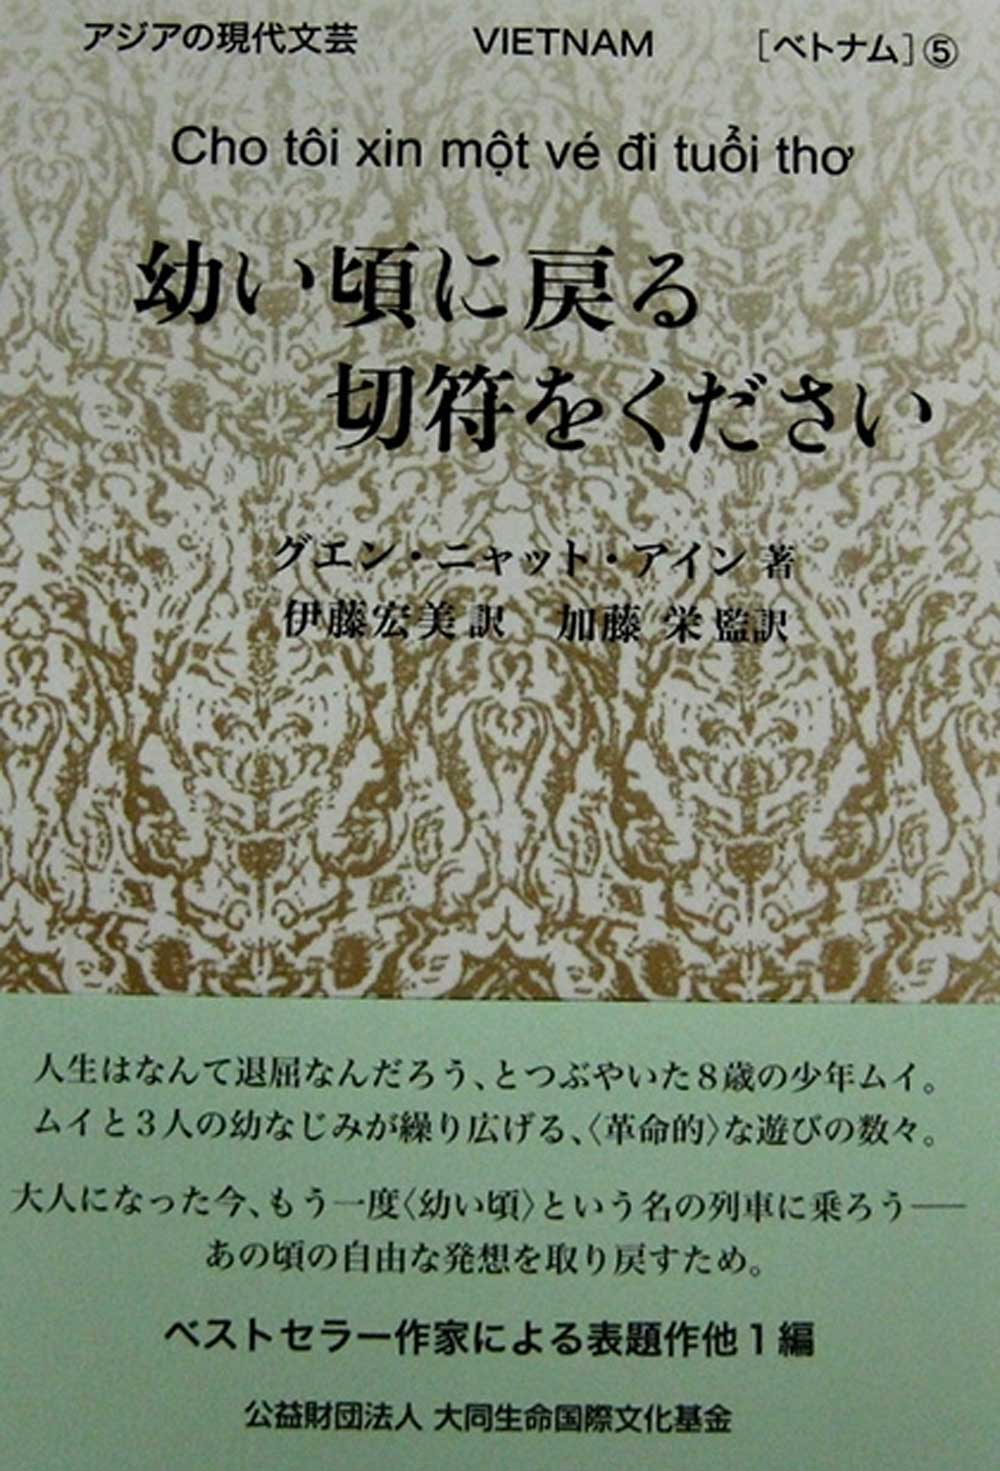 Vietnamese novel, released in Japanese, Give me a ticket back to childhood, Vietnamese writer, Nguyen Nhat Anh, mutual understanding